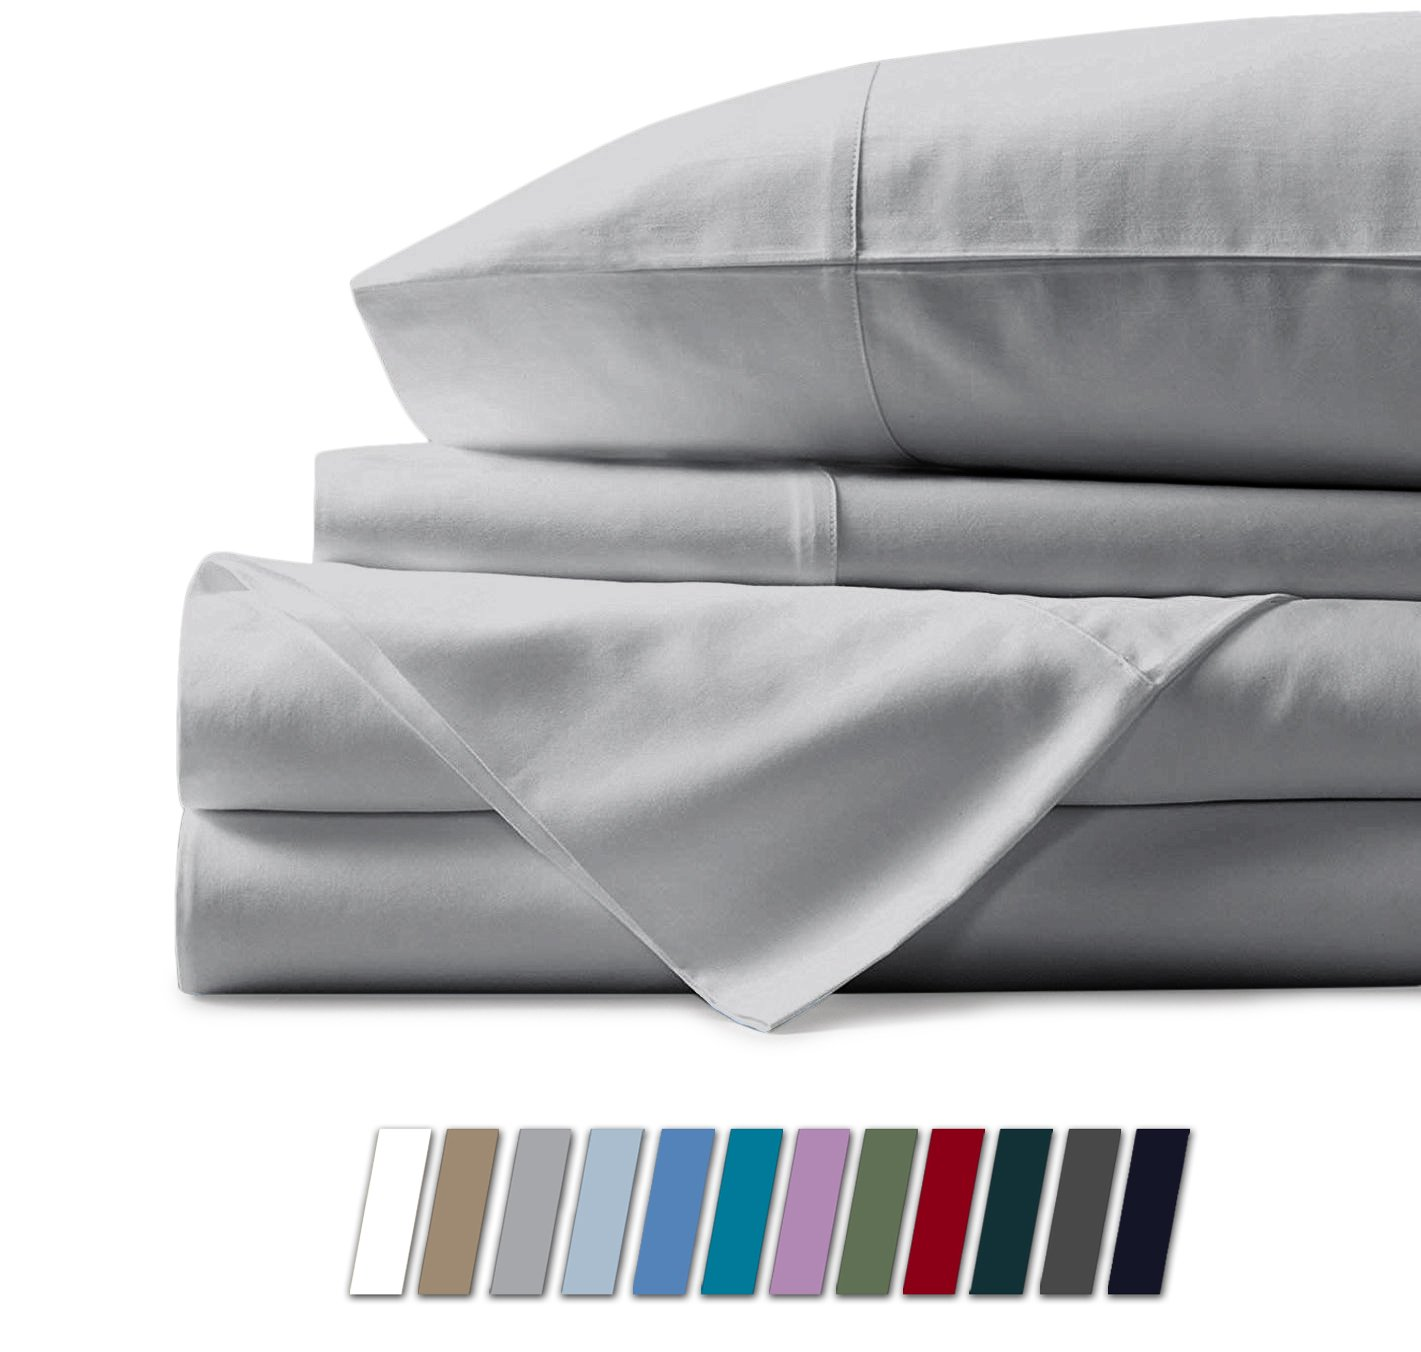 Mayfair Linen 100% Egyptian Cotton Sheets, White Twin Sheets Set, 800 Thread Count Long Staple Cotton, Sateen Weave for Soft and Silky Feel, Fits Mattress Upto 18'' DEEP Pocket